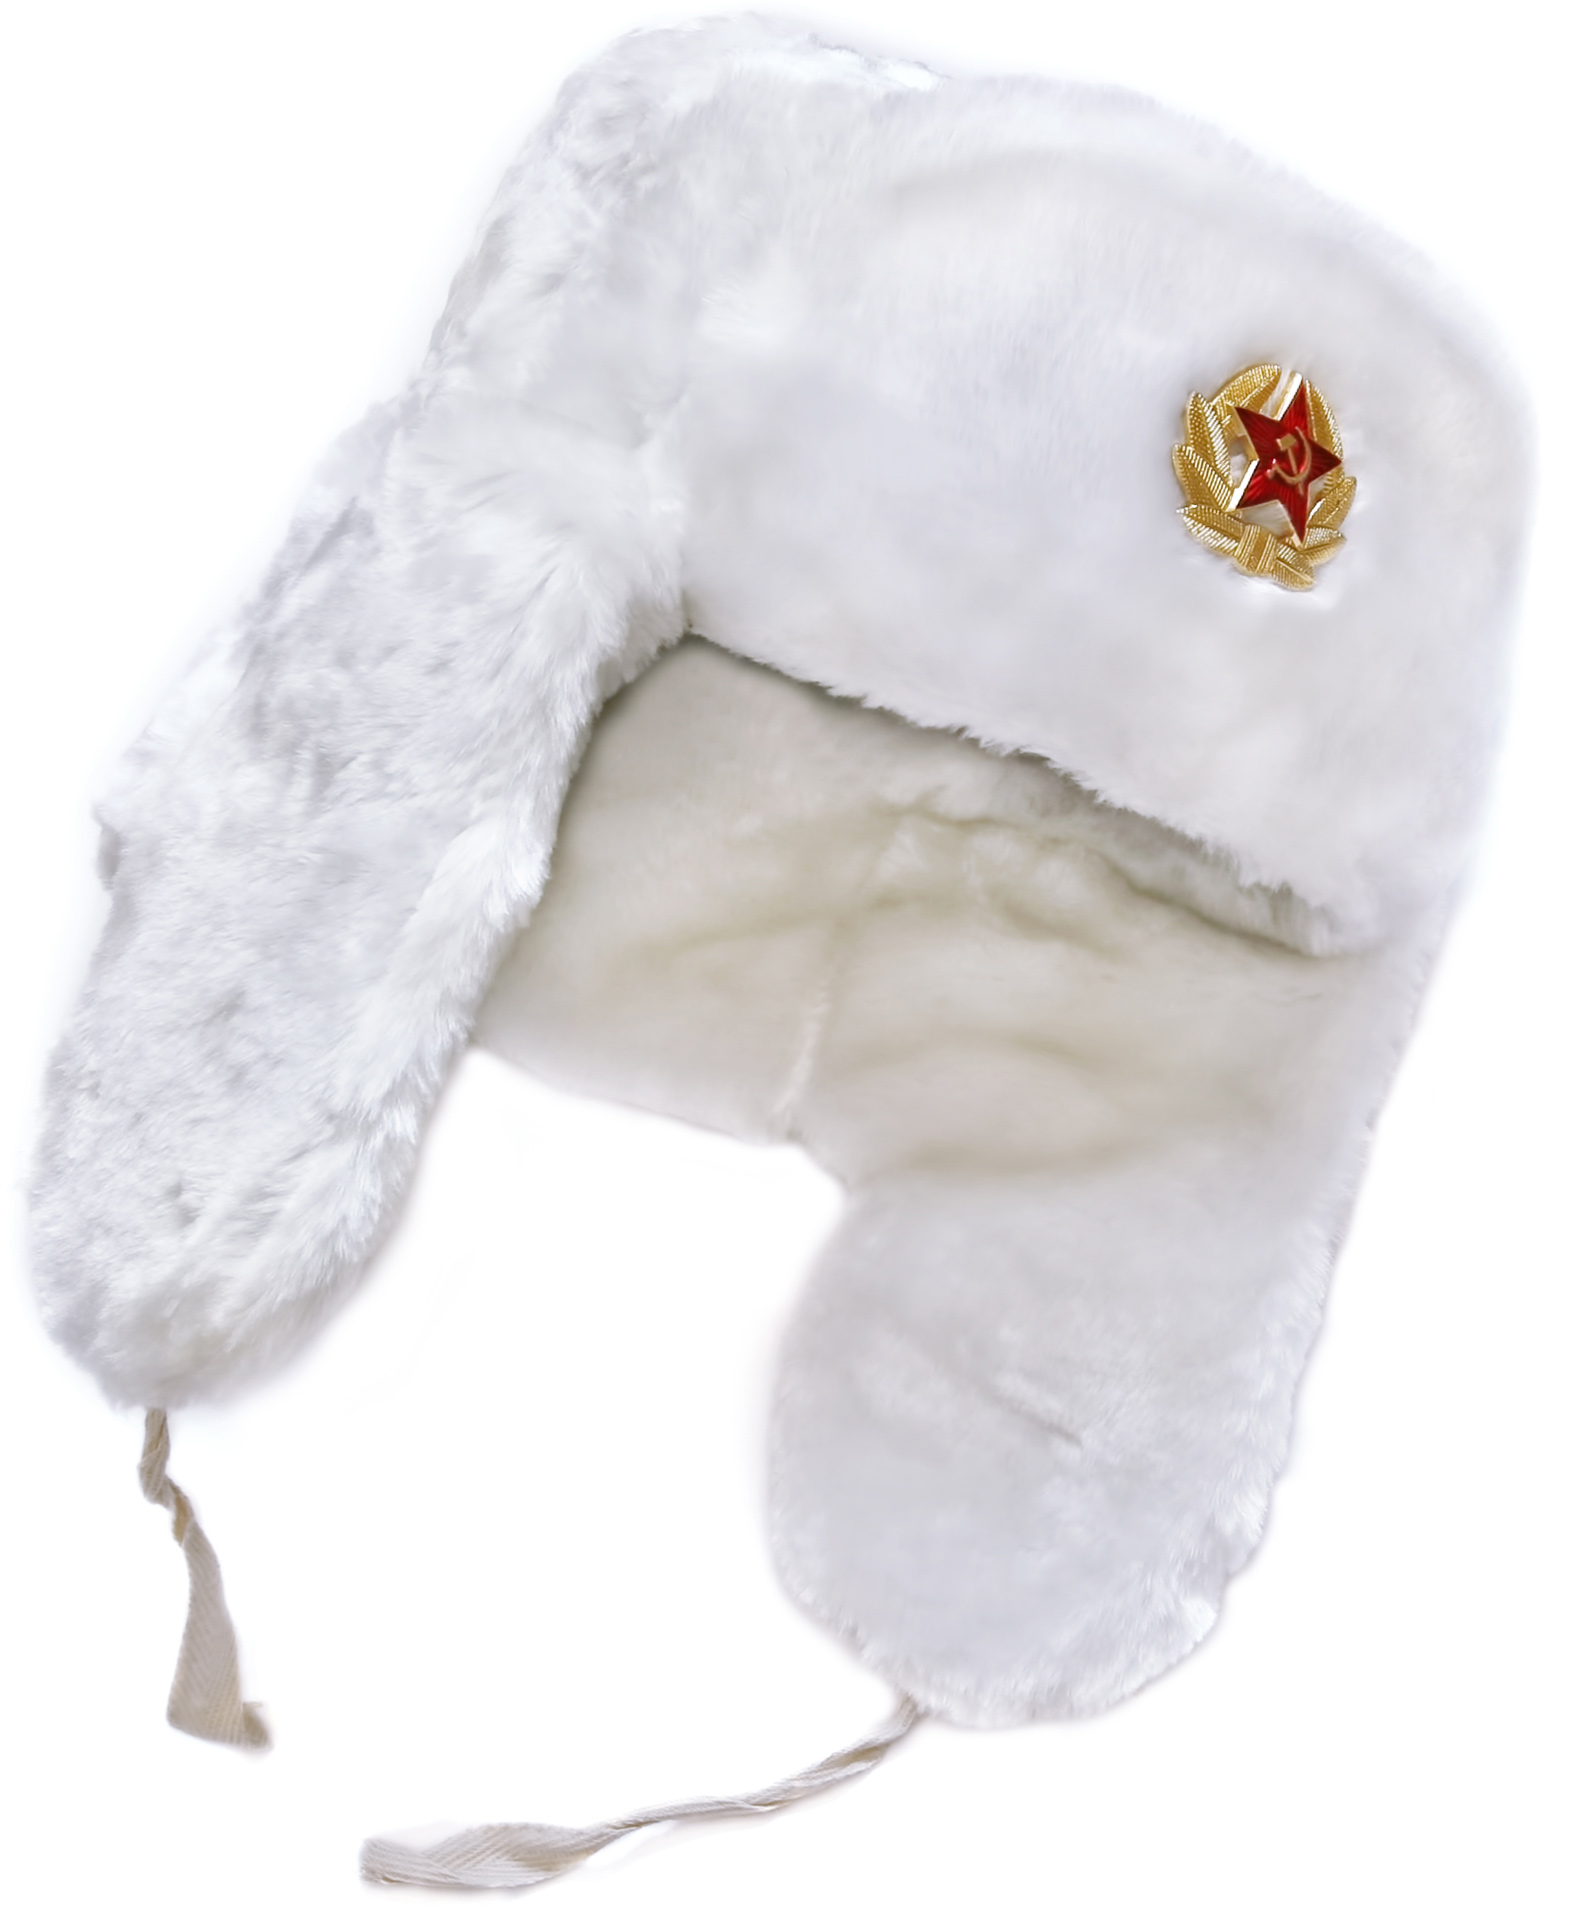 3812cabd026d2 White winter hat earflaps pulled down